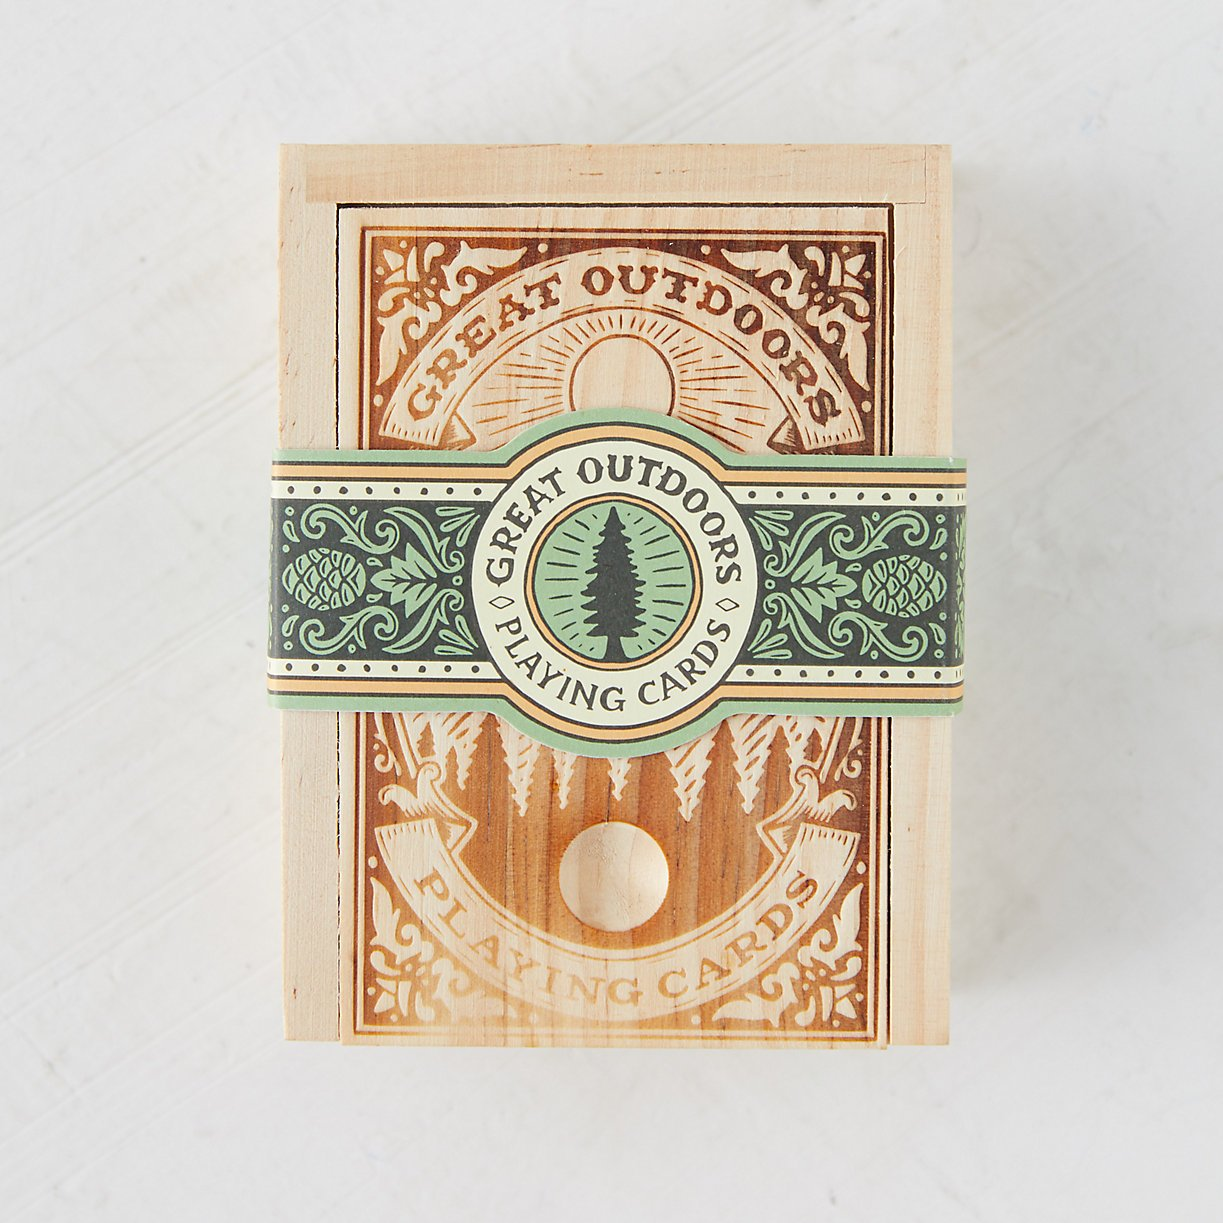 Great Outdoors Playing Cards